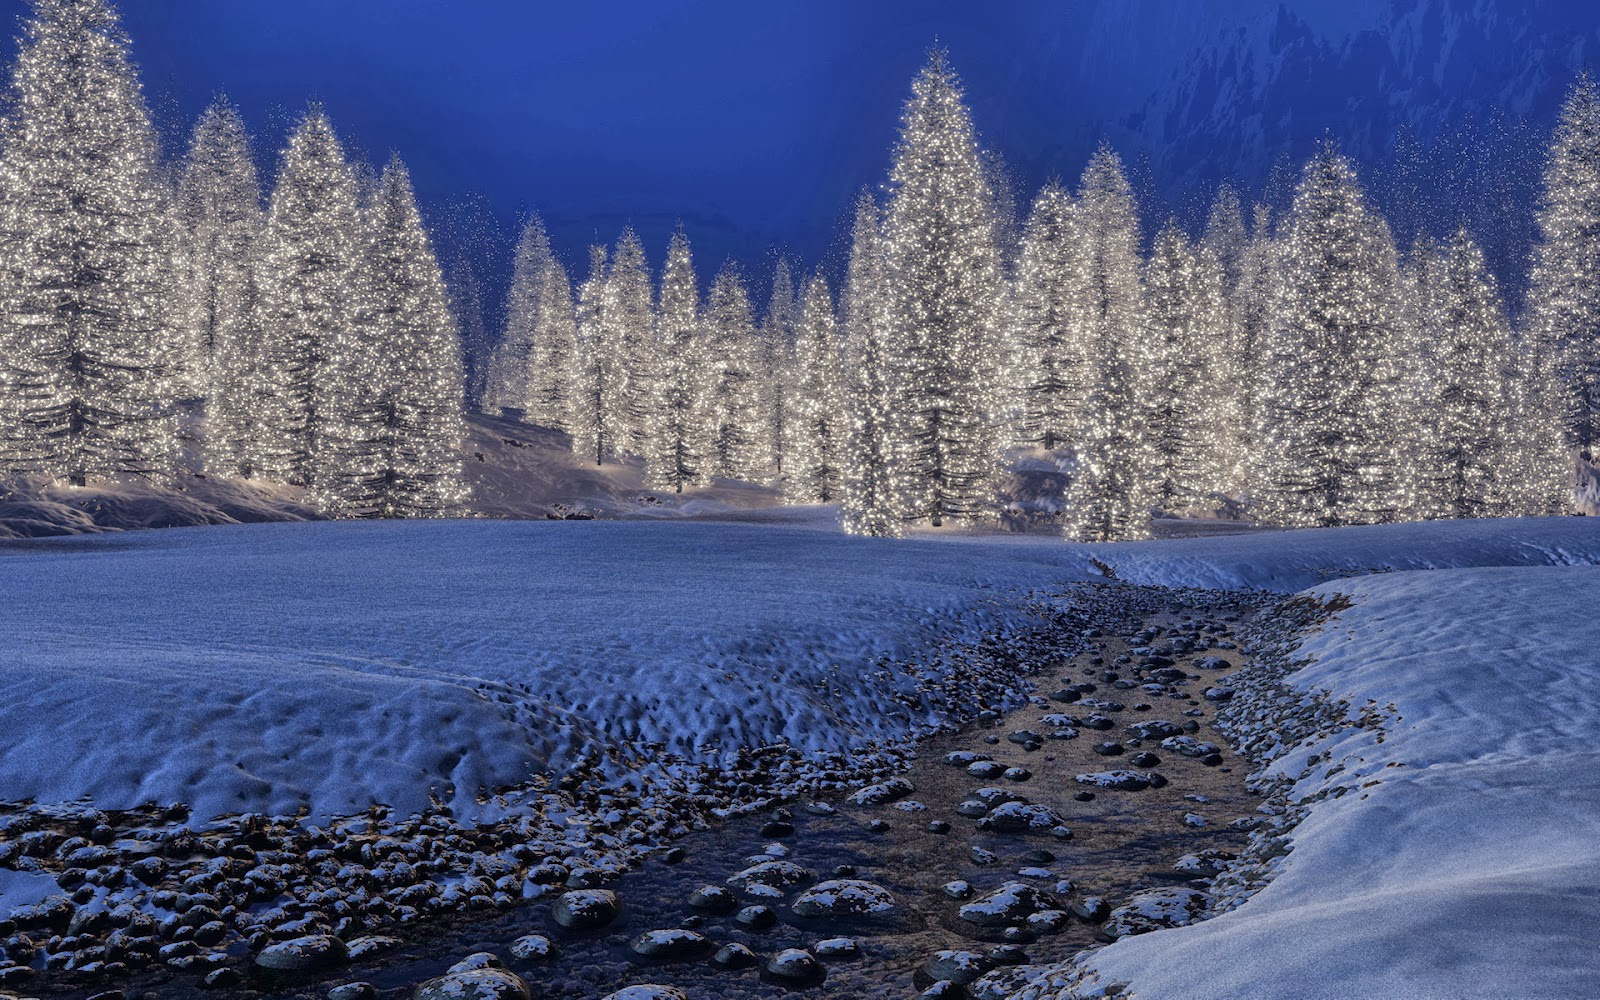 wallpaper for pc full screen,snow,winter,nature,tree,natural landscape